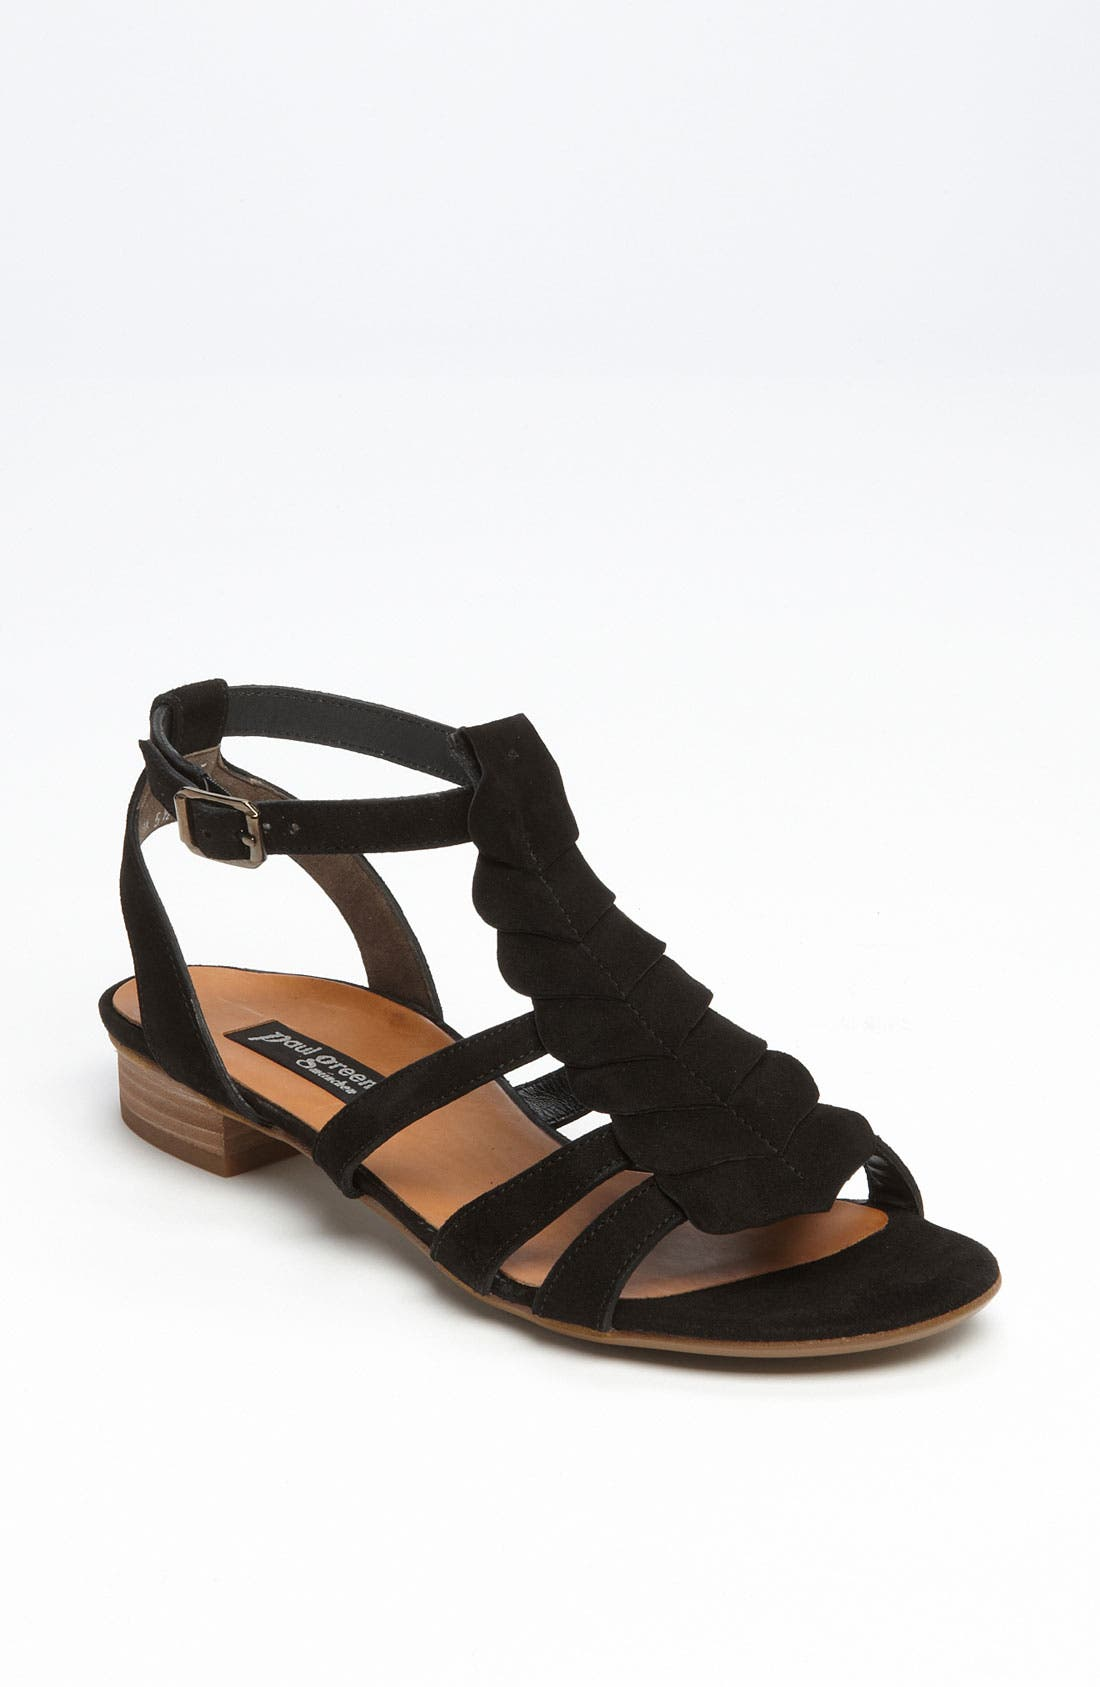 Main Image - Paul Green 'Lola' Sandal